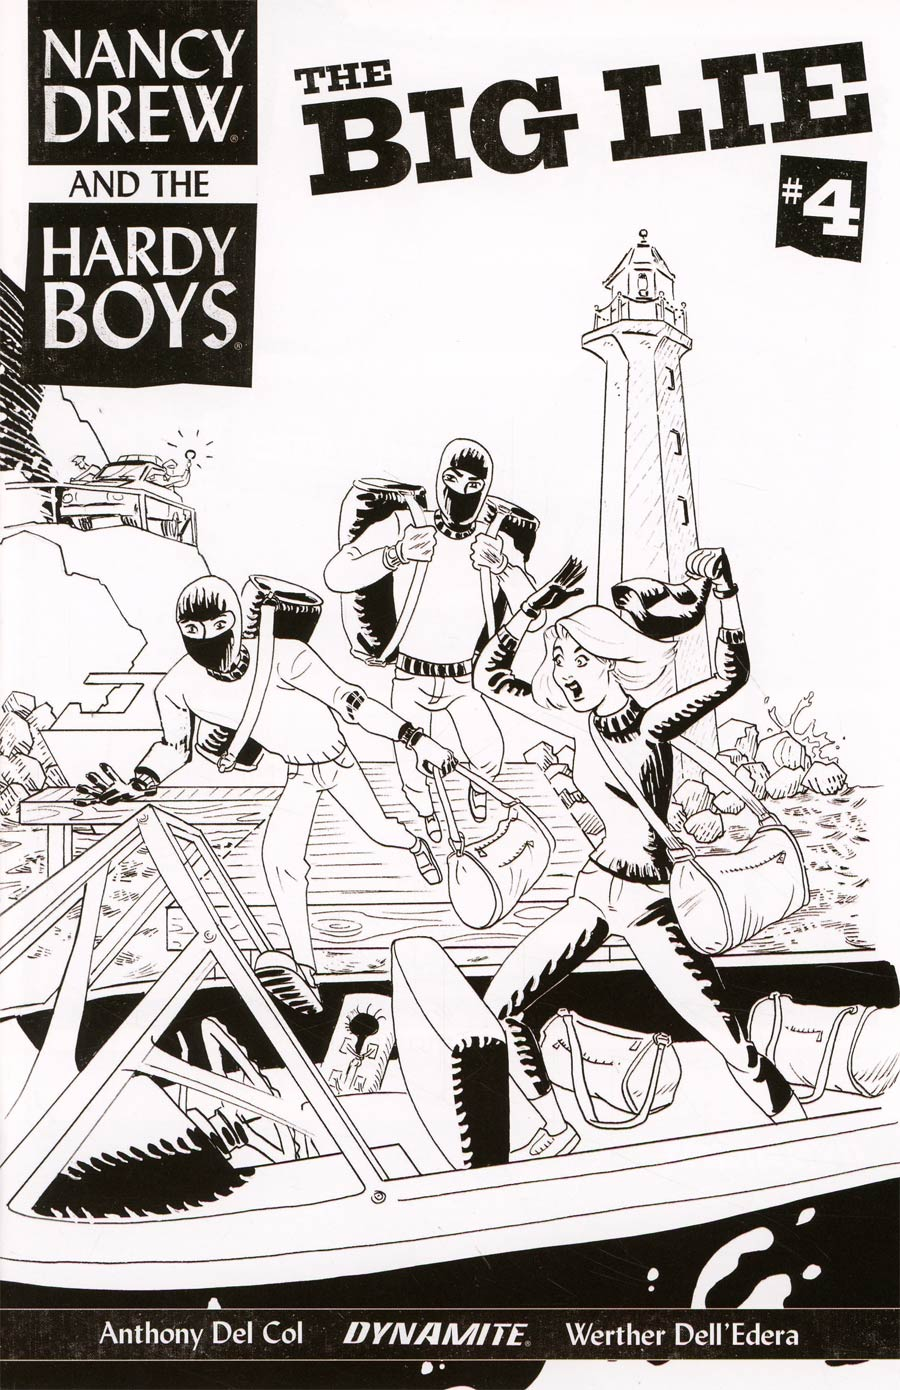 Nancy Drew And The Hardy Boys The Big Lie #4 Cover C Incentive Dave Bullock Black & White Cover